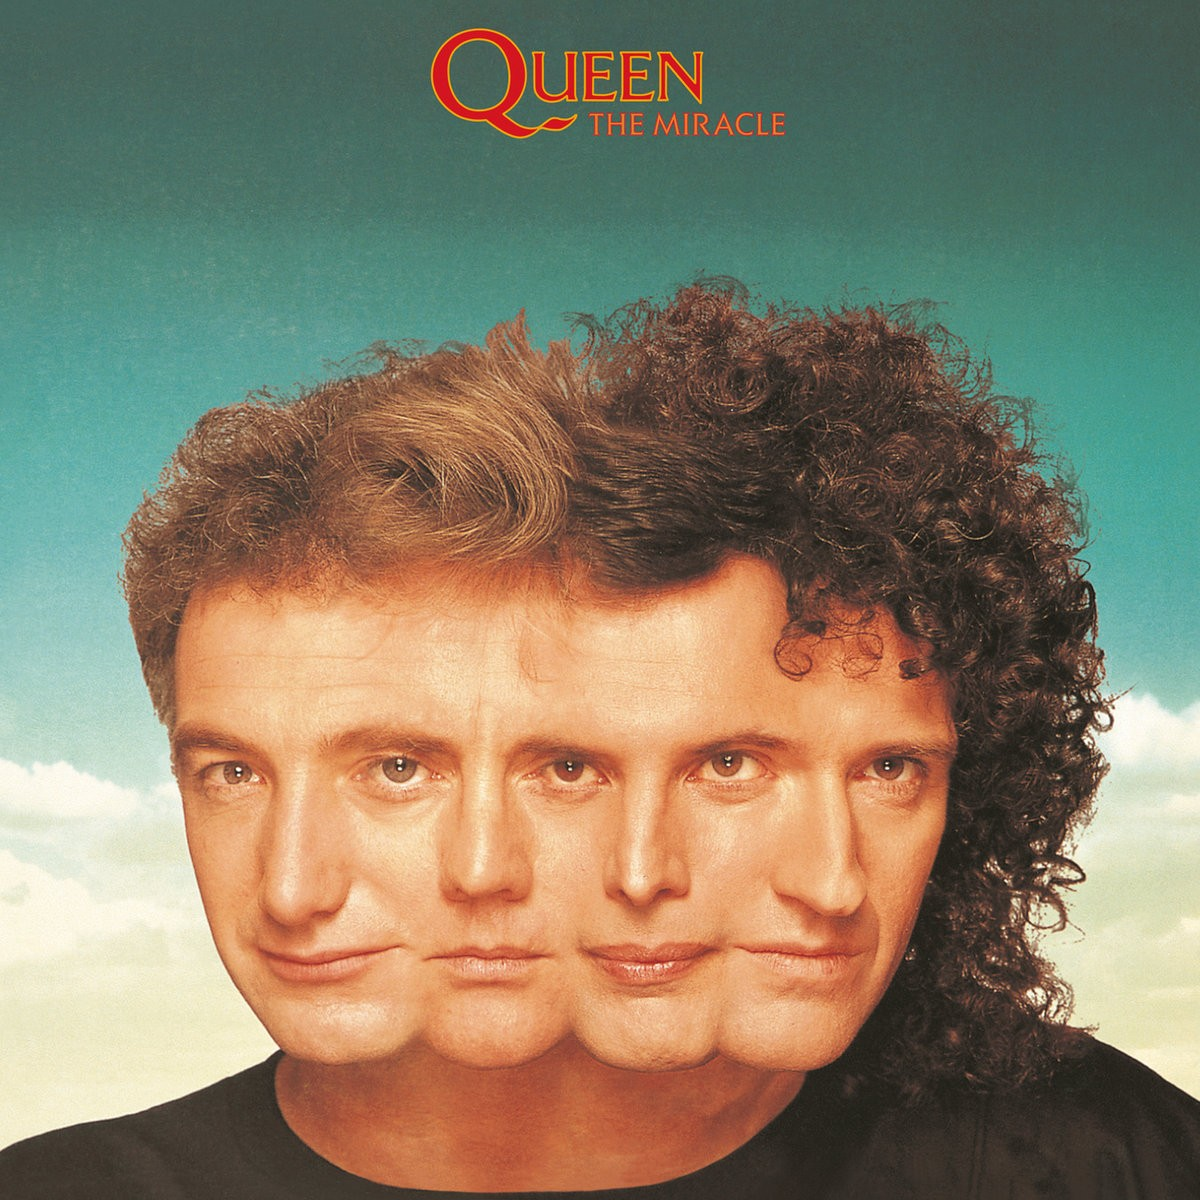 Queen - The Miracle VINYL - 06025 4720280